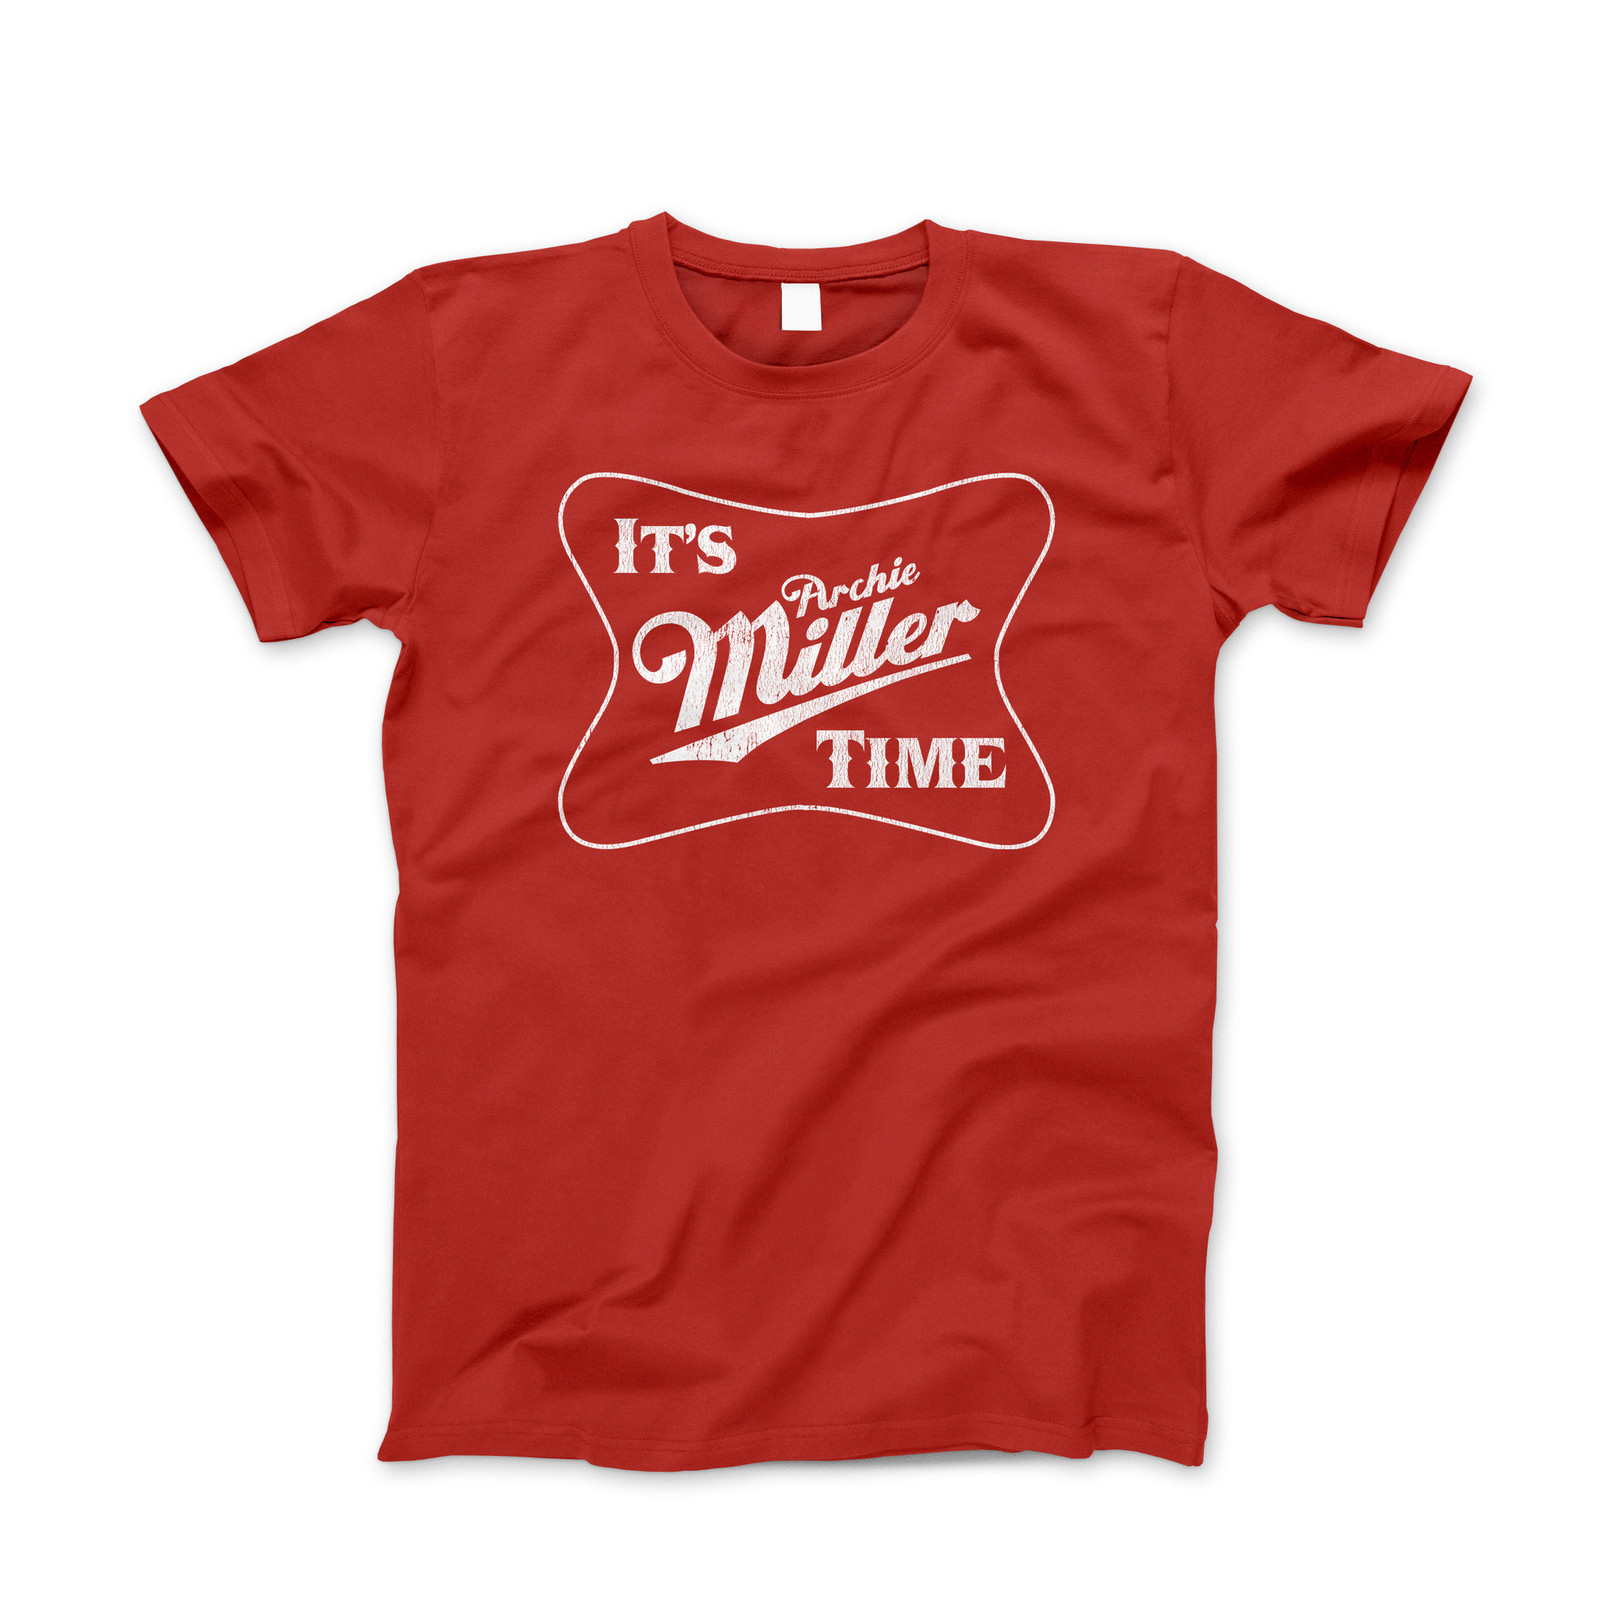 Archie MILLER TIME Basketball T-Shirt for sale  USA